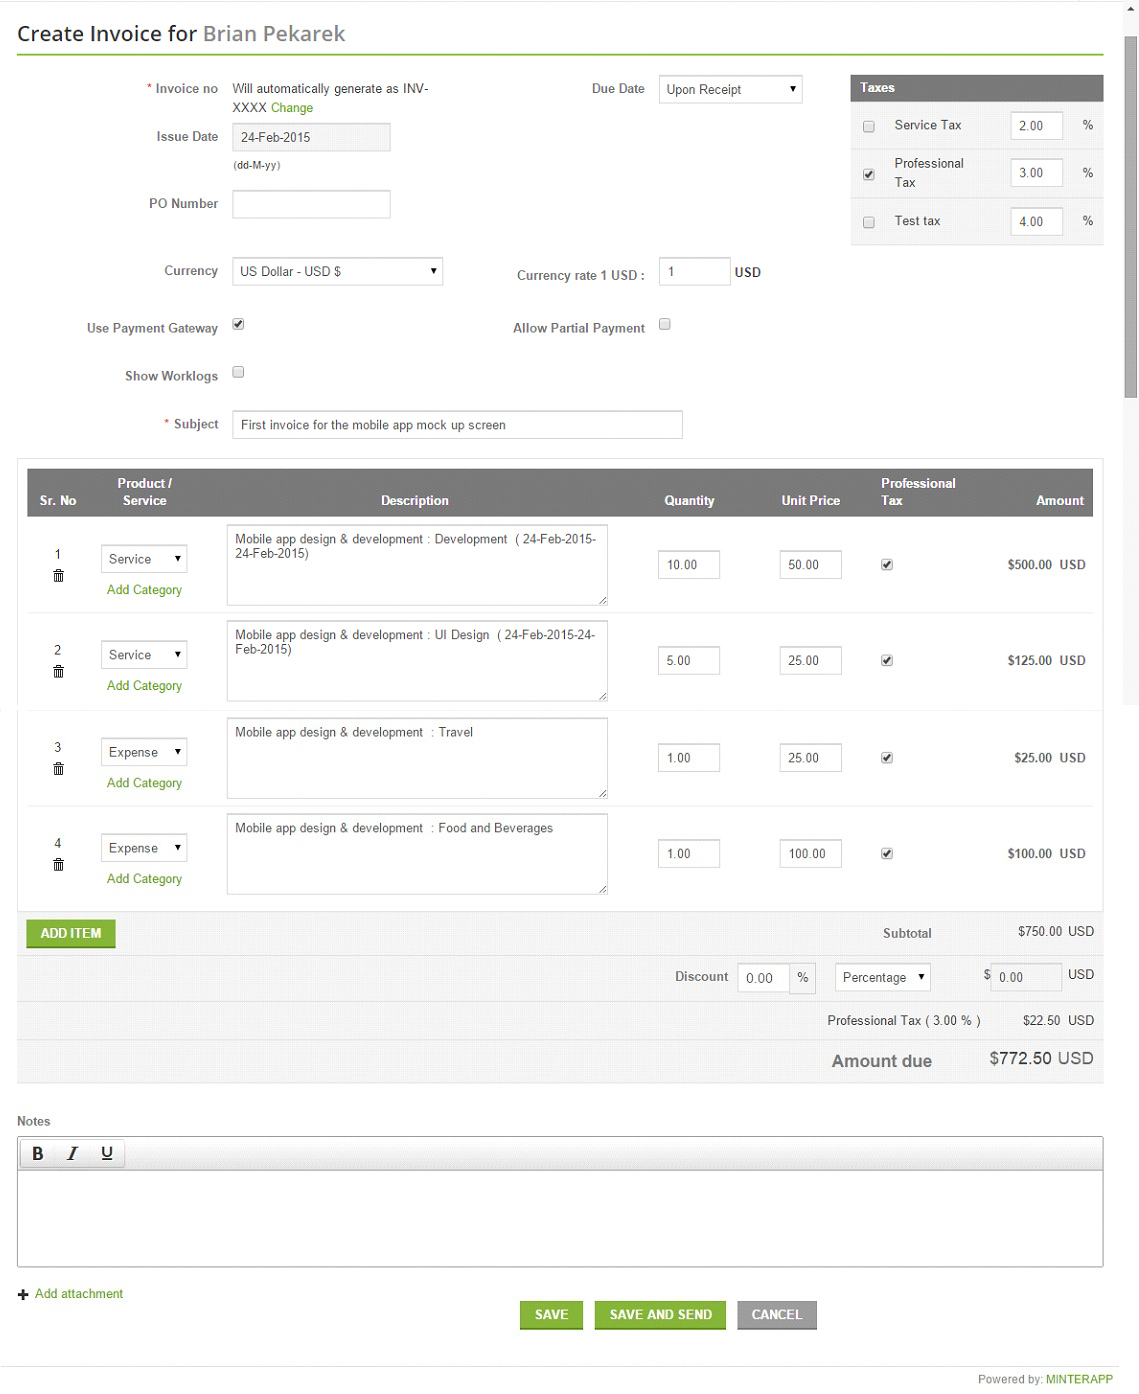 Online Invoicing Is Made Simple And Faster With Minterapp - Simple invoice generator